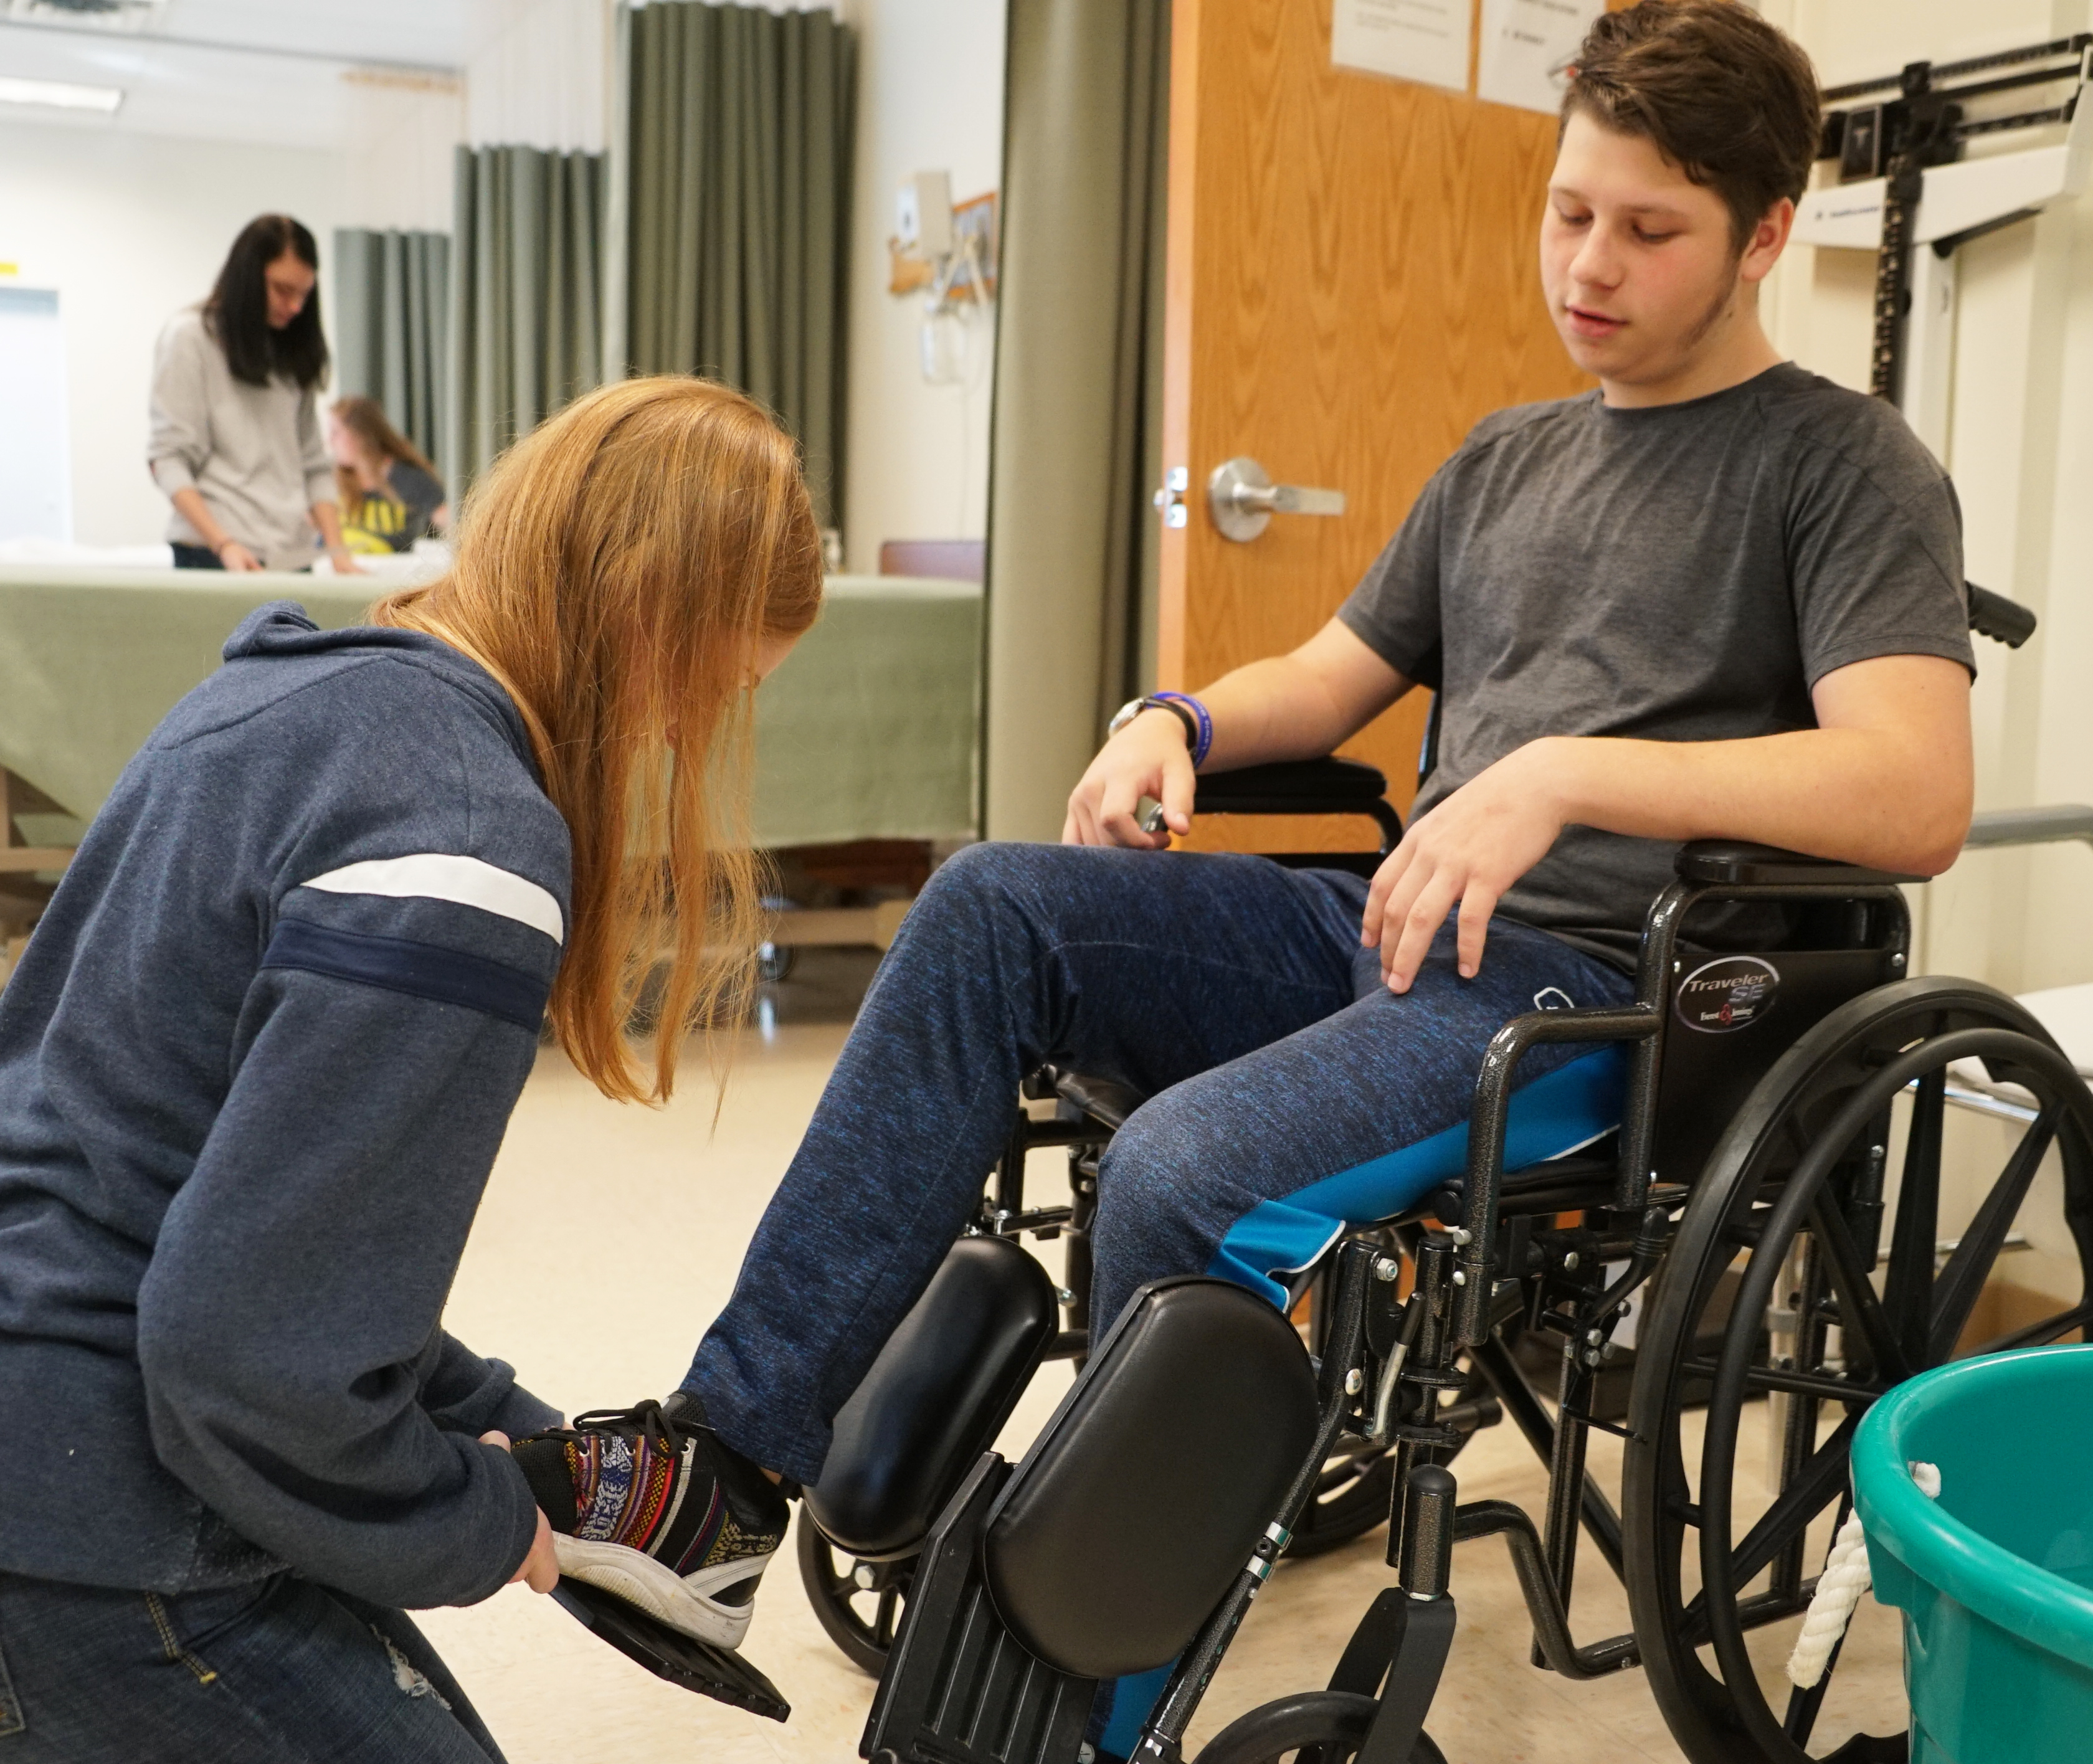 student assisting another student in wheel chair